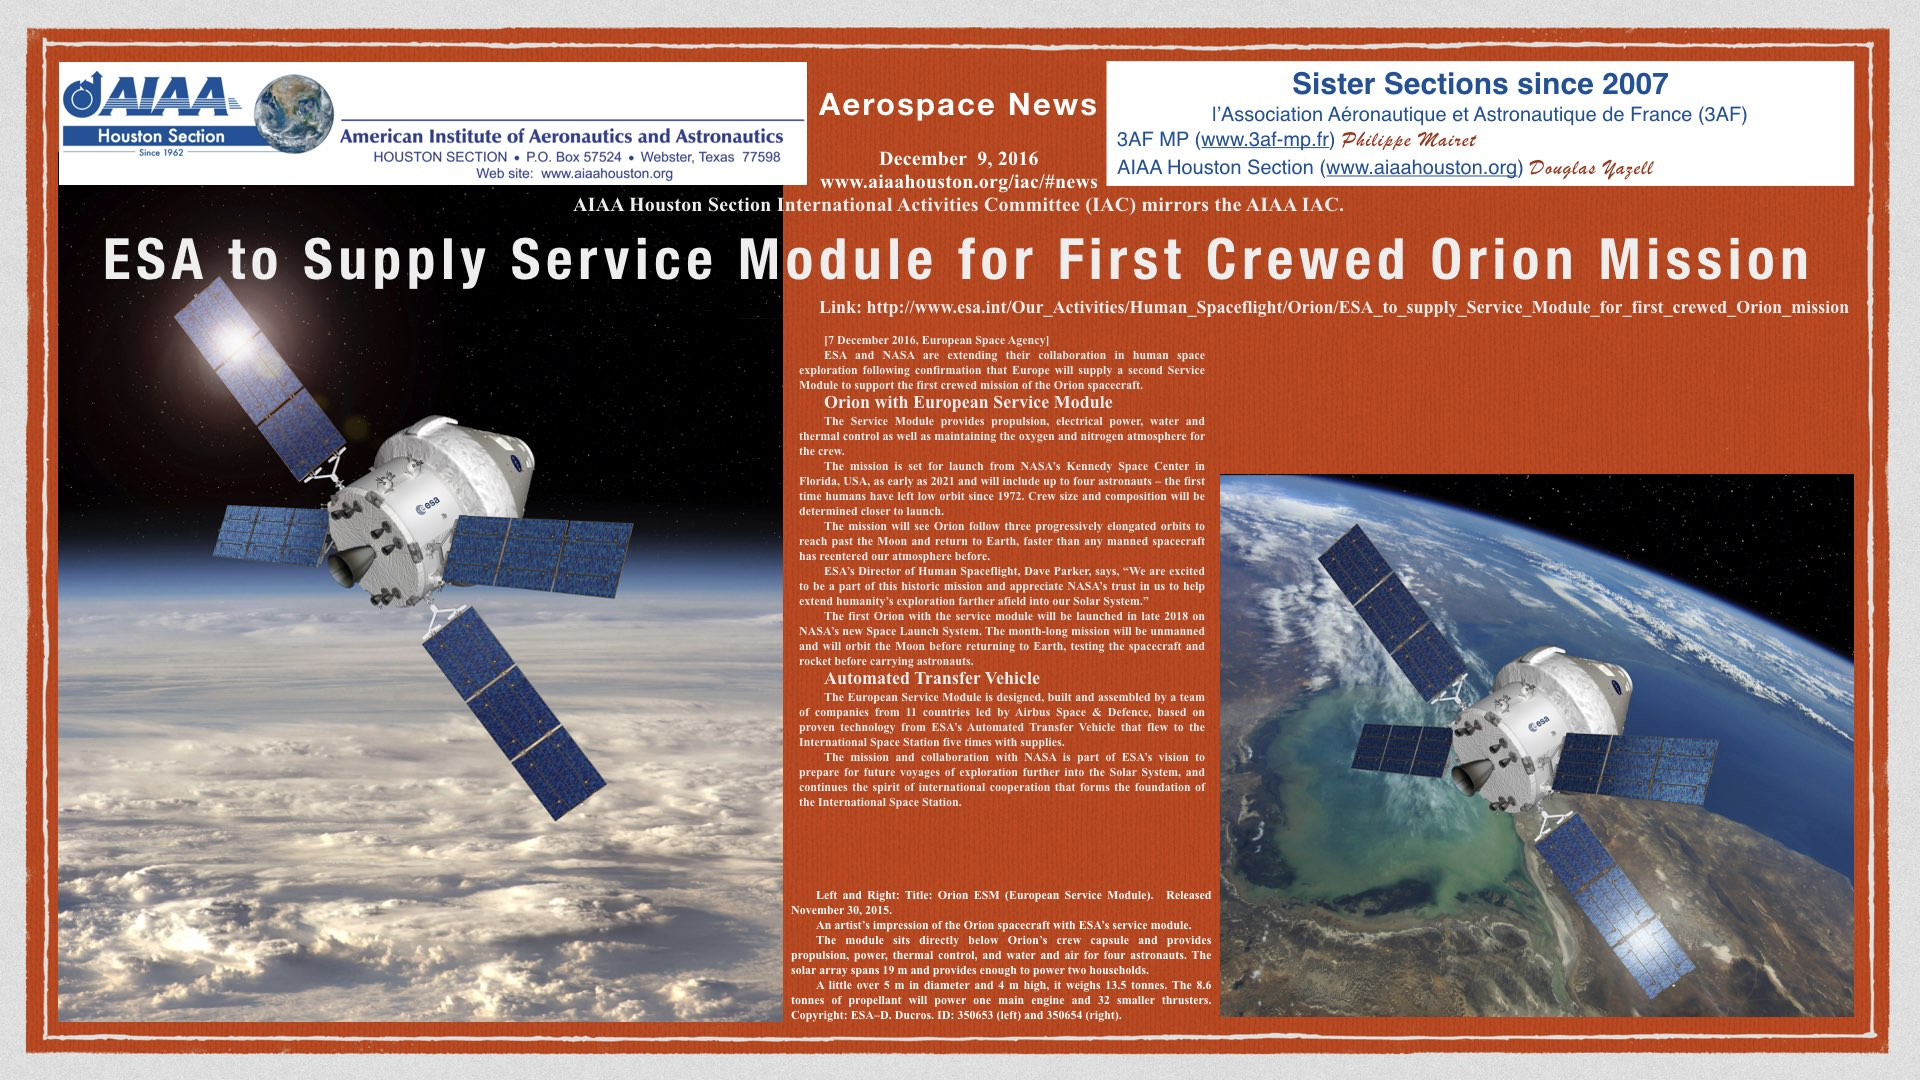 Above: ESA to Supply Service Module for First Crewed Orion Mission. (Click to zoom.)